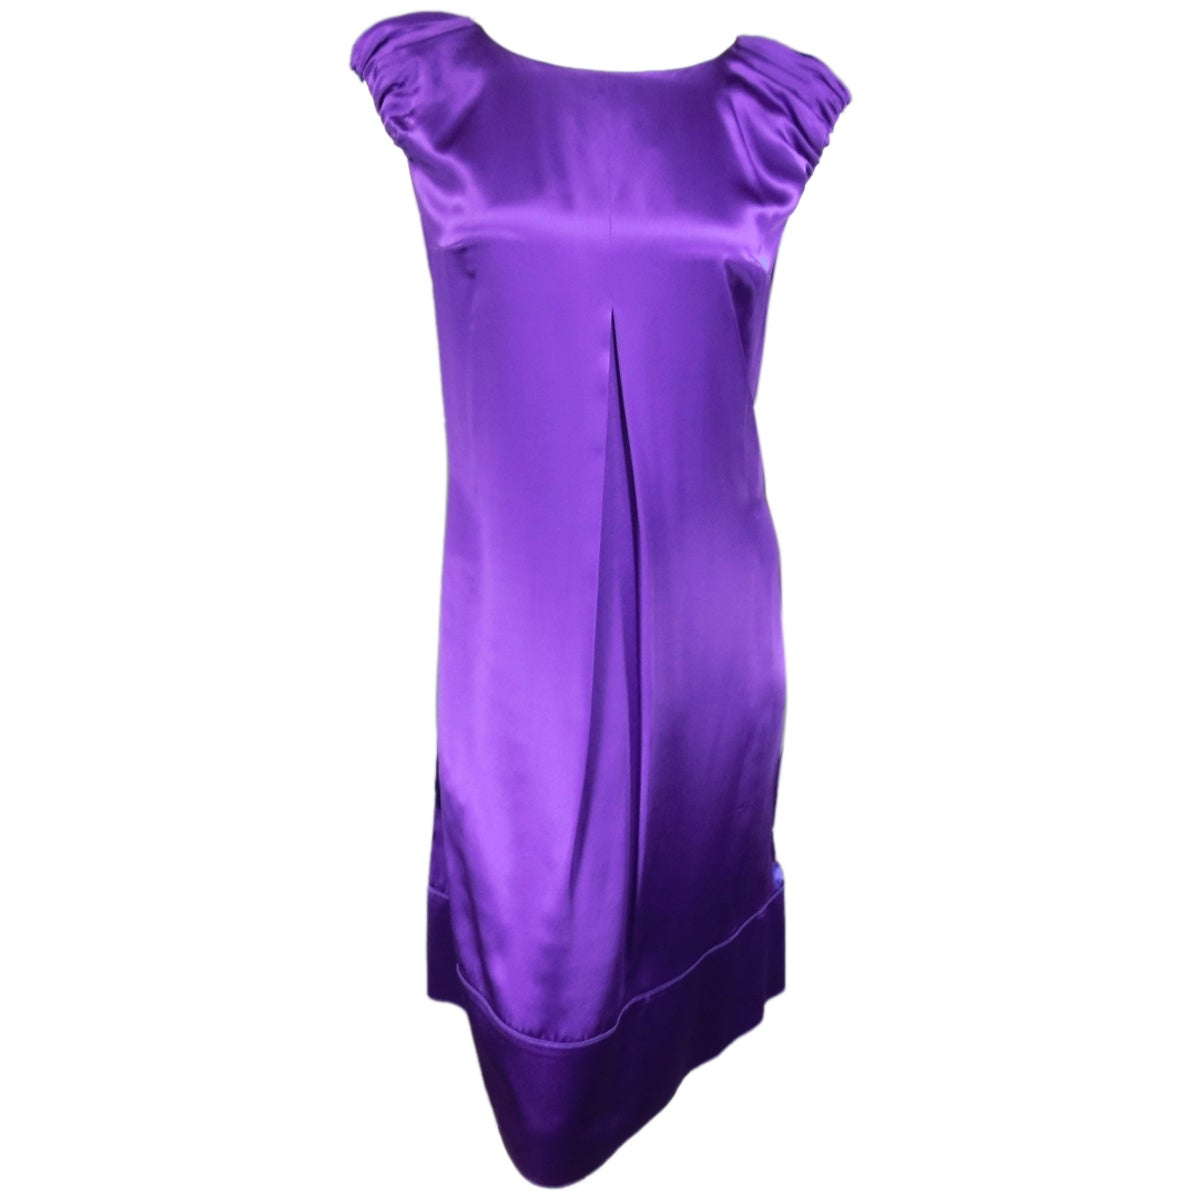 DOLCE & GABBANA Dress US 4 Purple Silk Satin A Line Short Puff Sleeve Cocktail